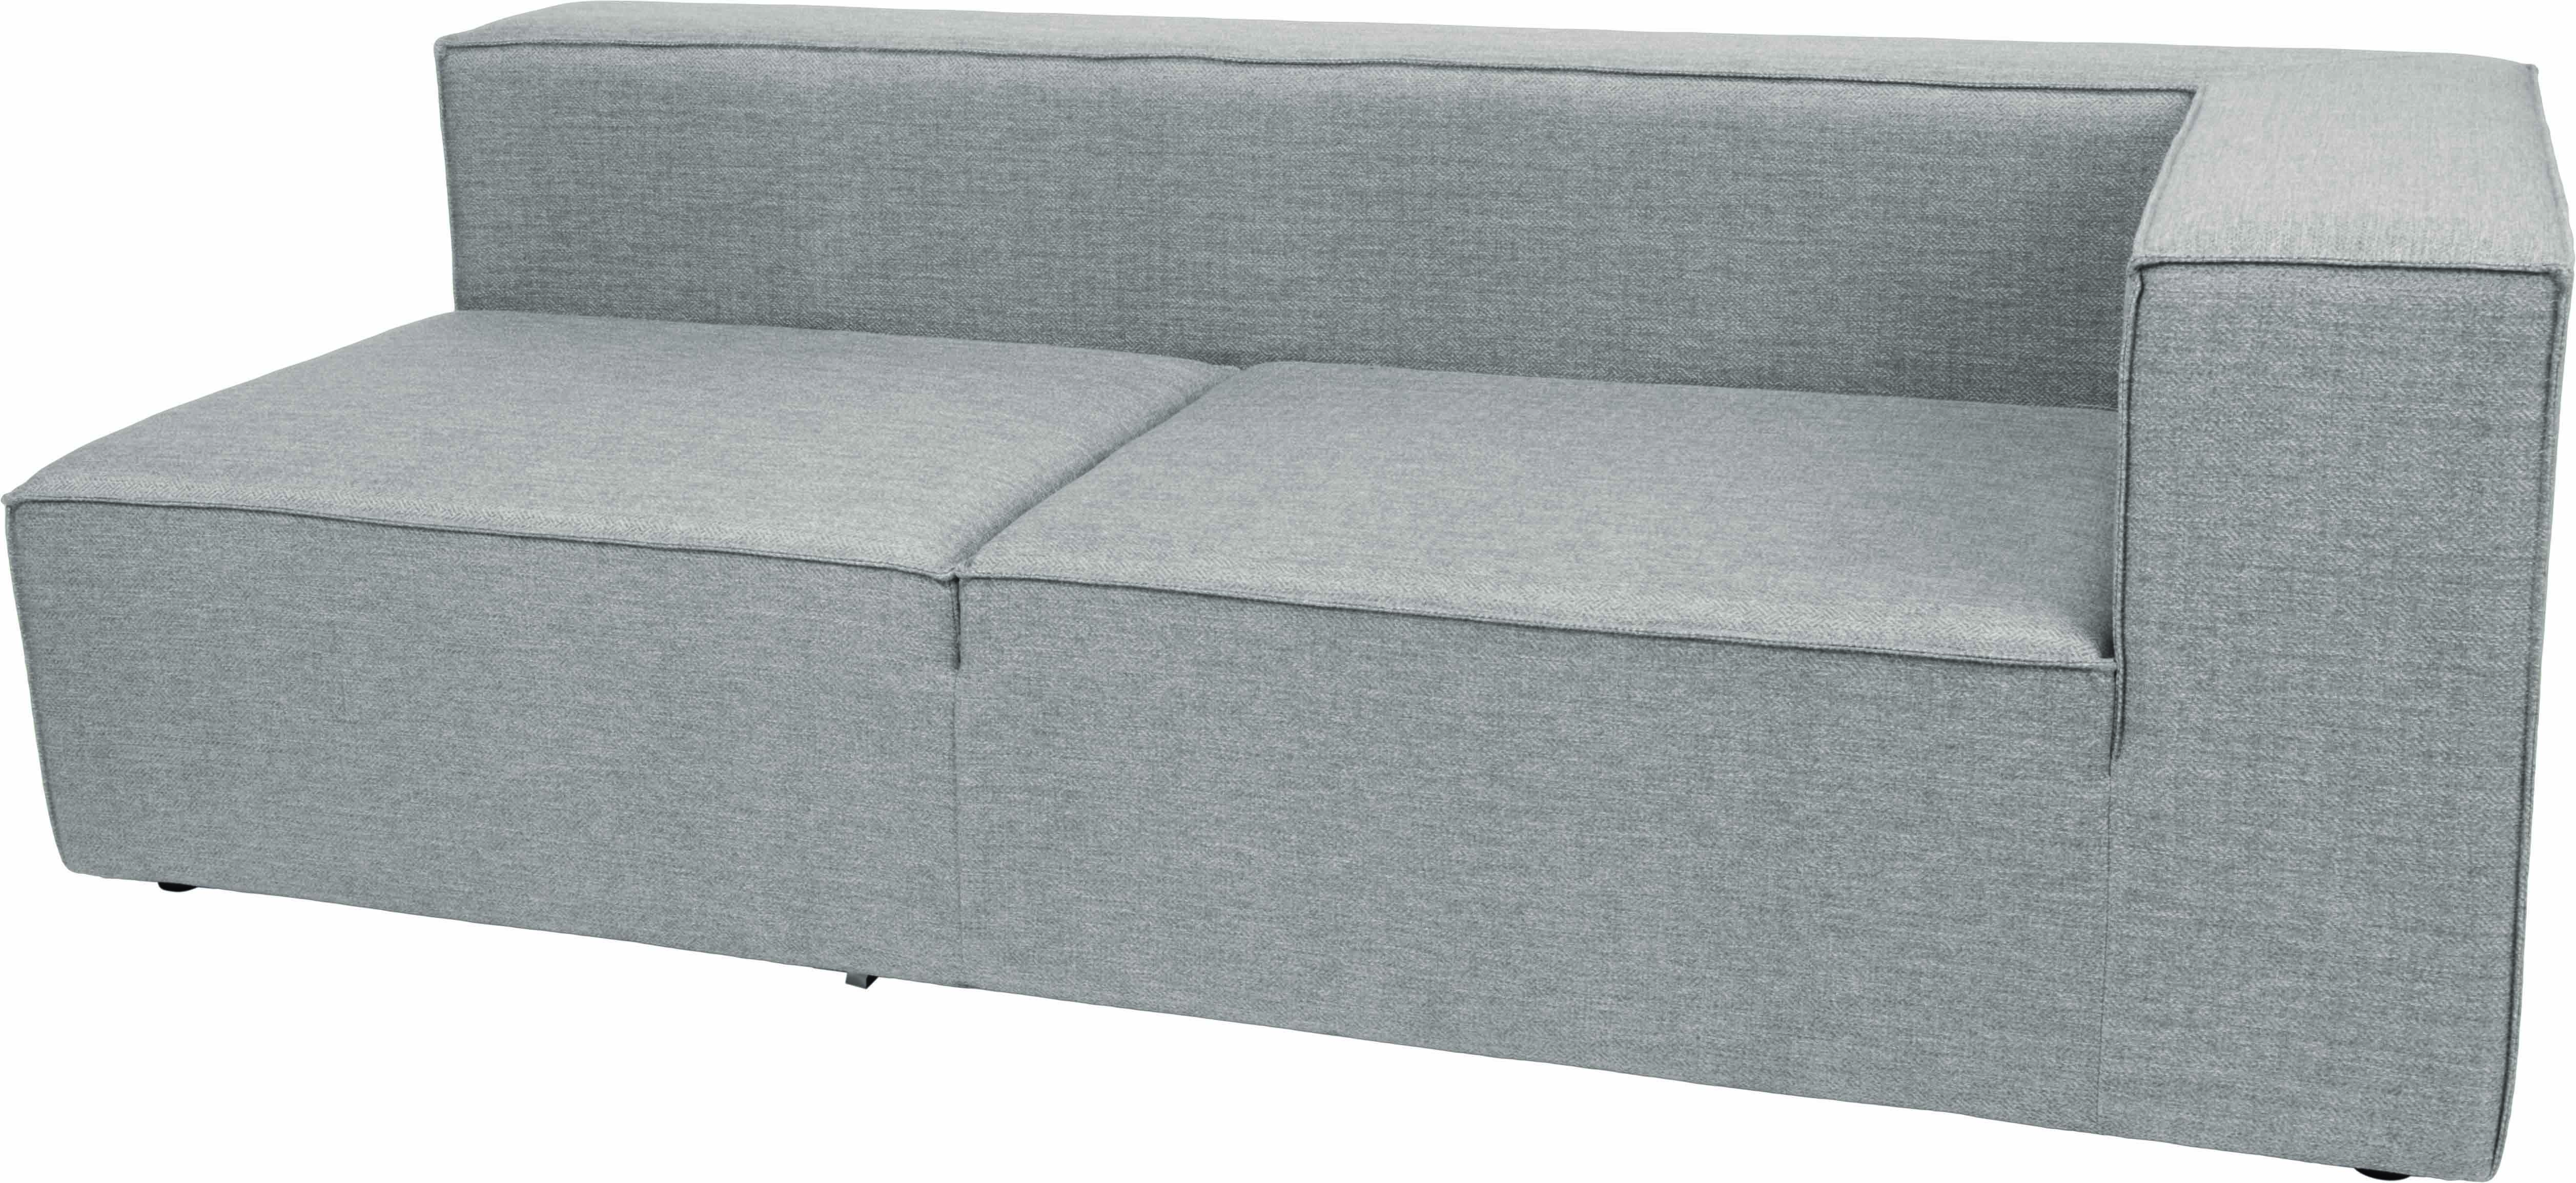 Excellent Adele Sectional Sofa Berg Stock Ncnpc Chair Design For Home Ncnpcorg